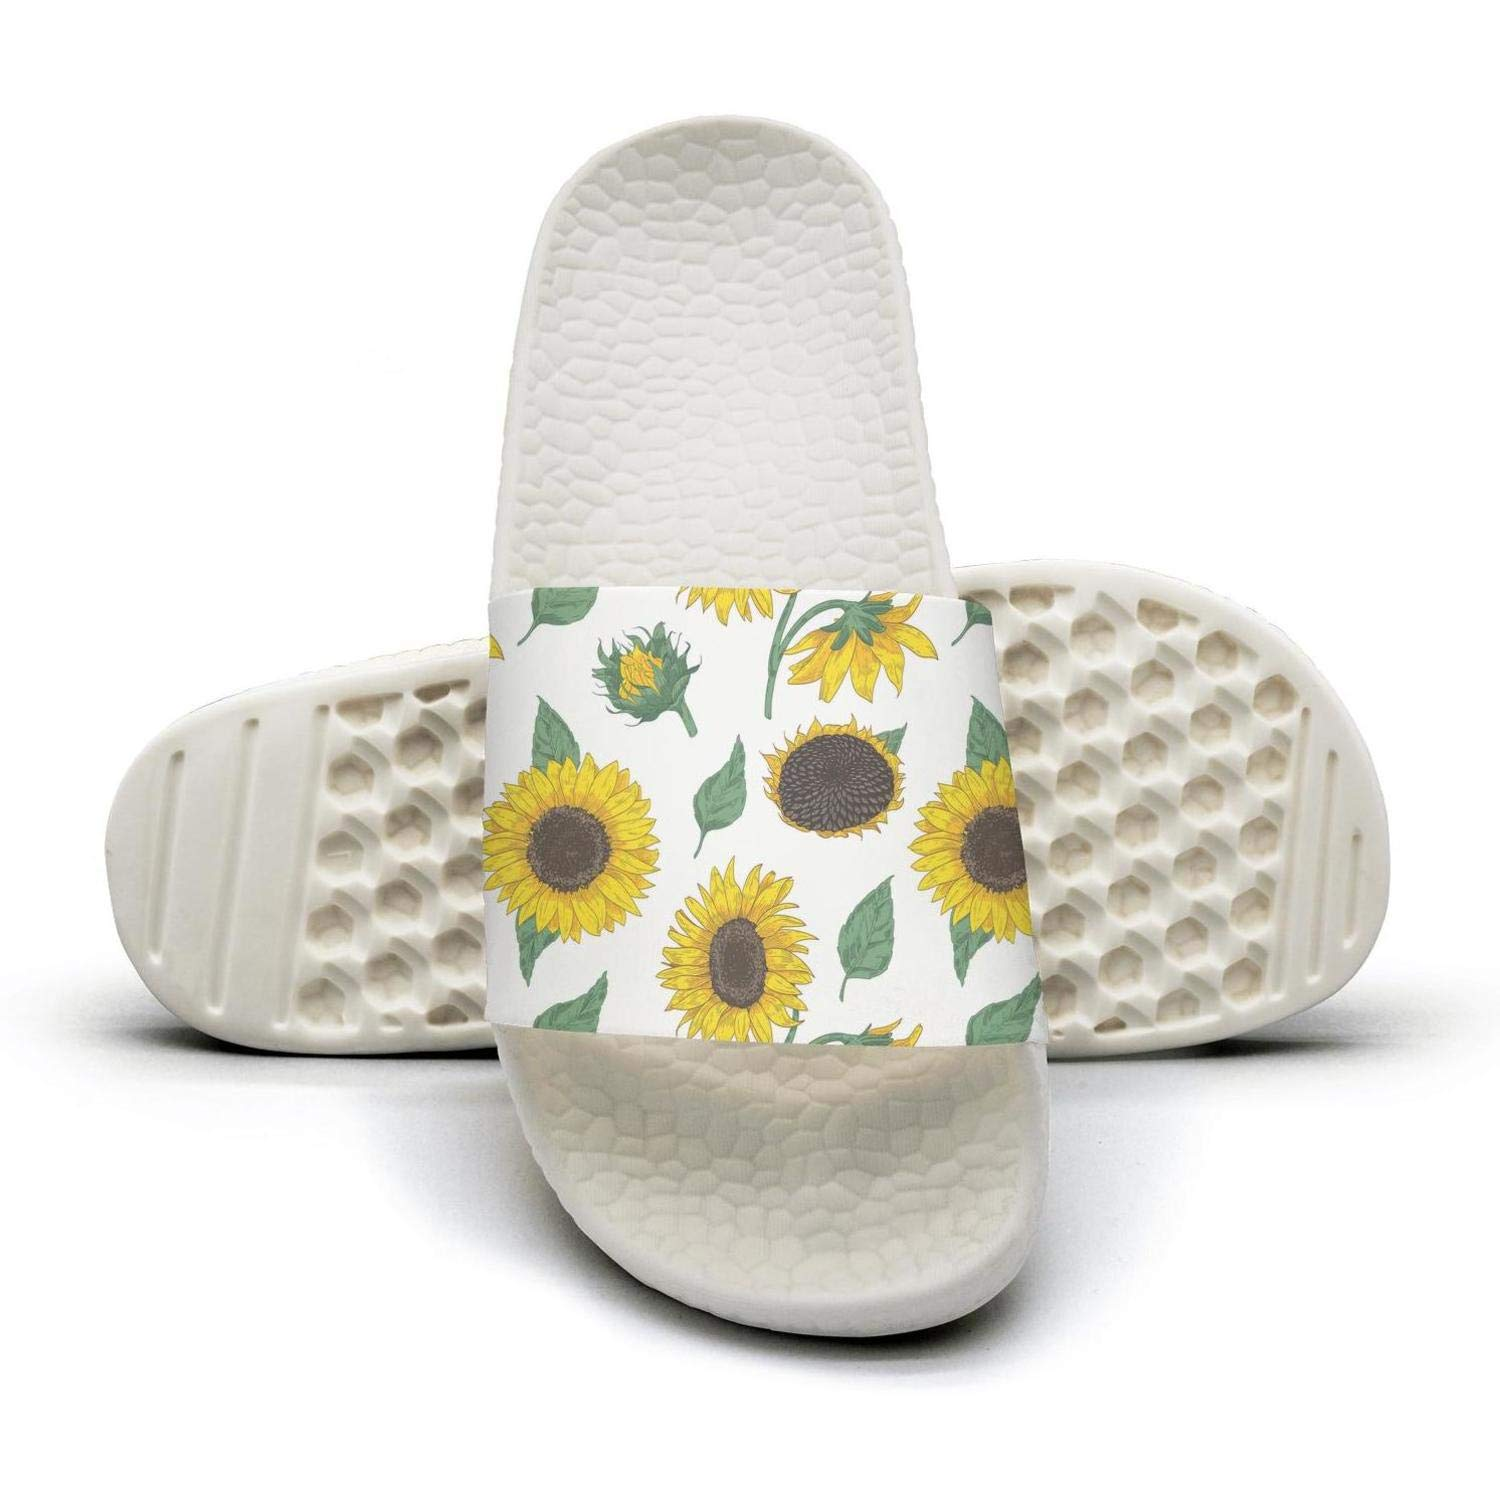 Mens Slipper White Black Elegant Floral Sunflower Stylish Lightweighted Open Toe Flat Shower Slides Shoes